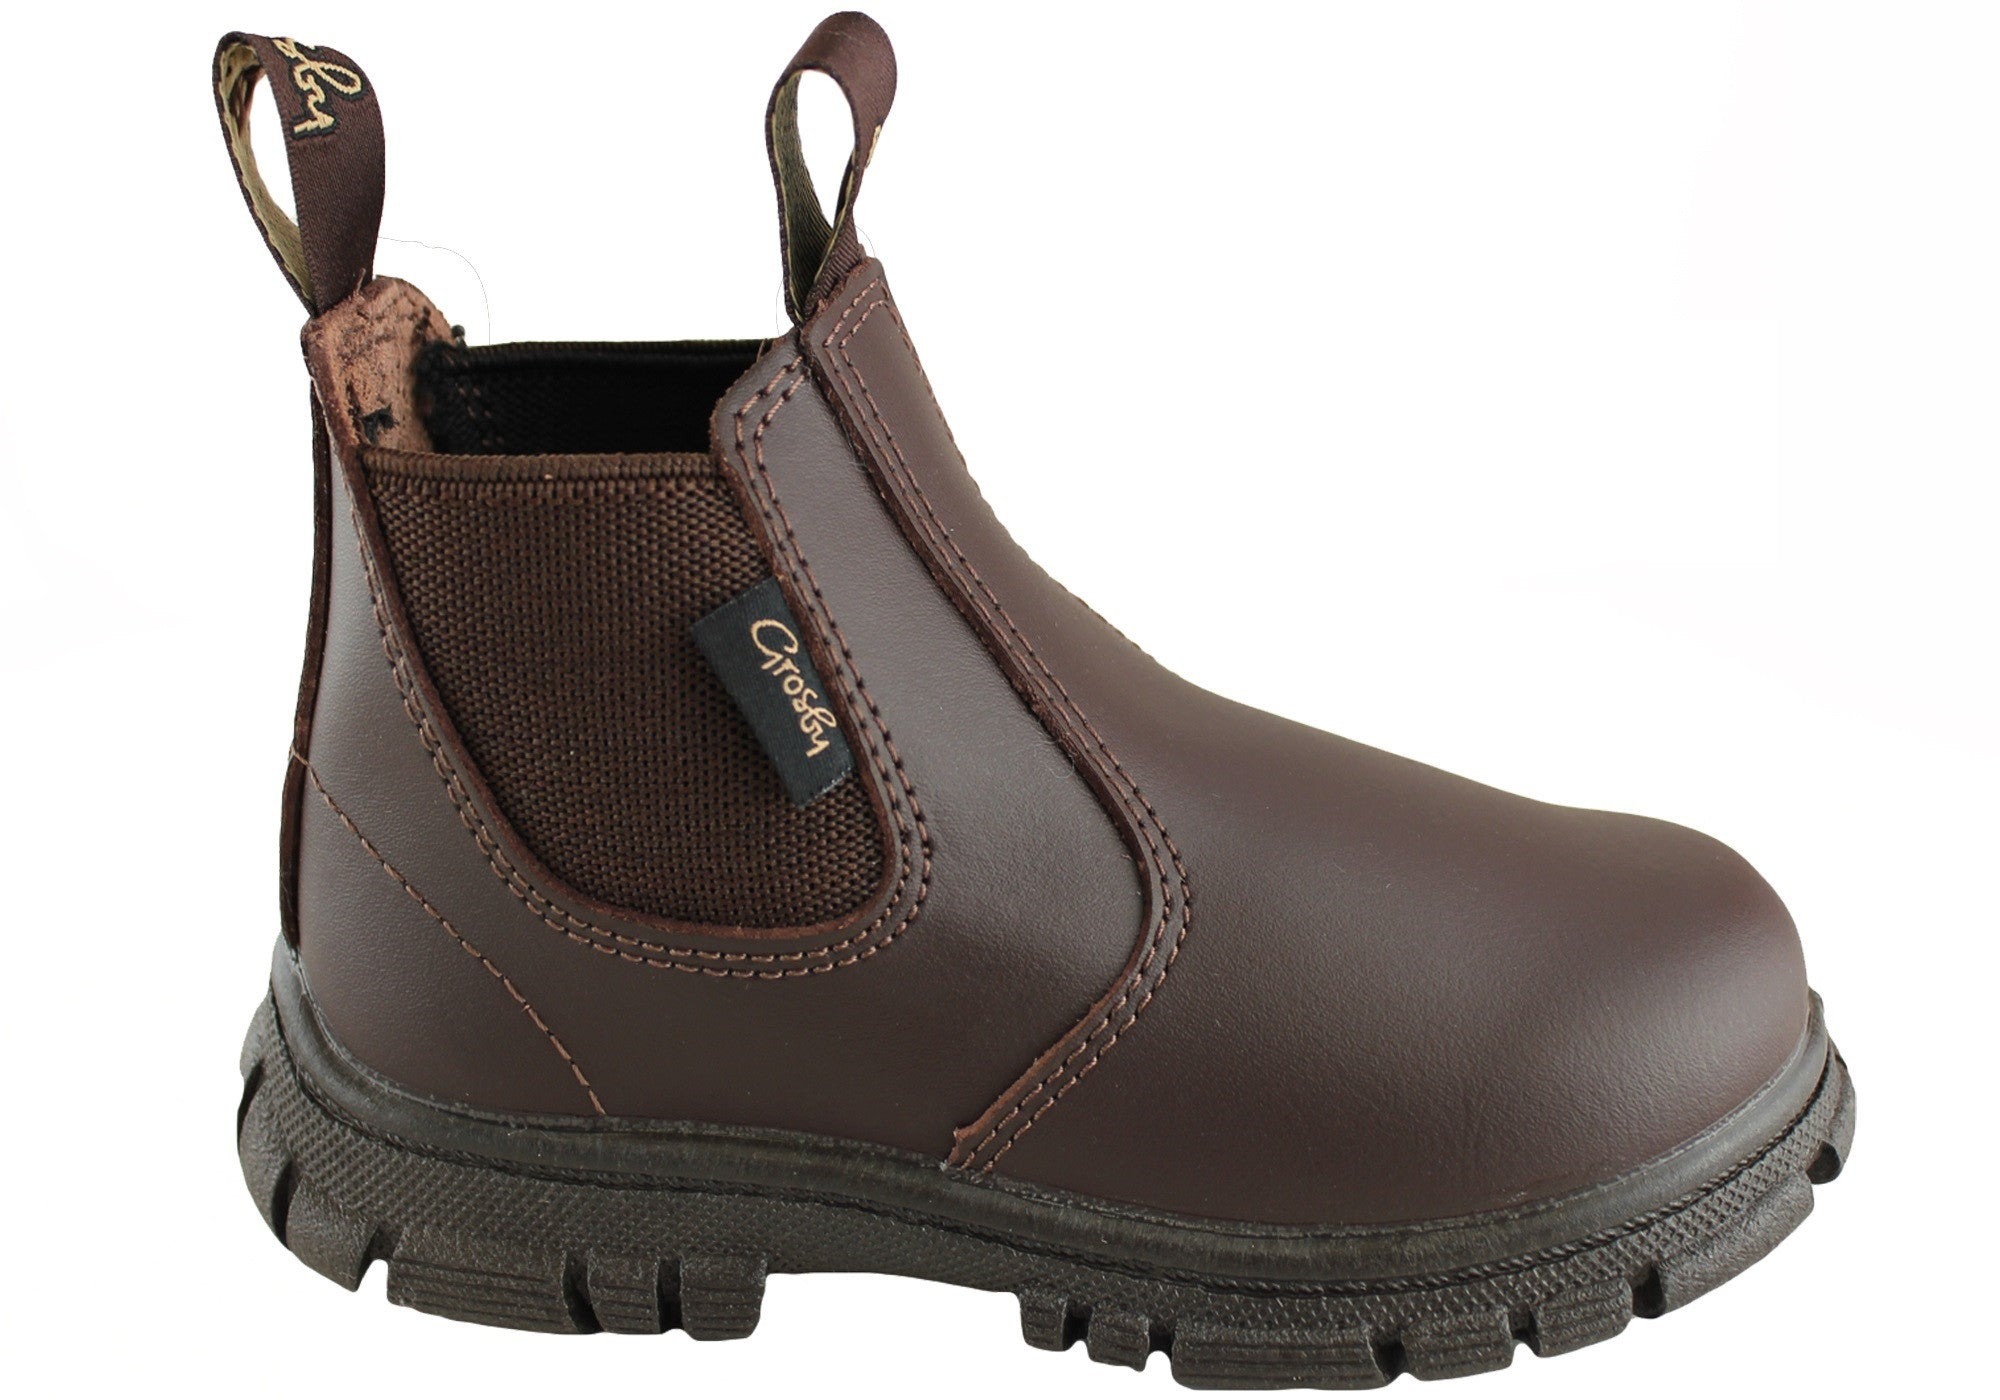 580823a2afa Home Grosby Ranch Junior Kids Leather Pull On Boots. Black · Brown ...